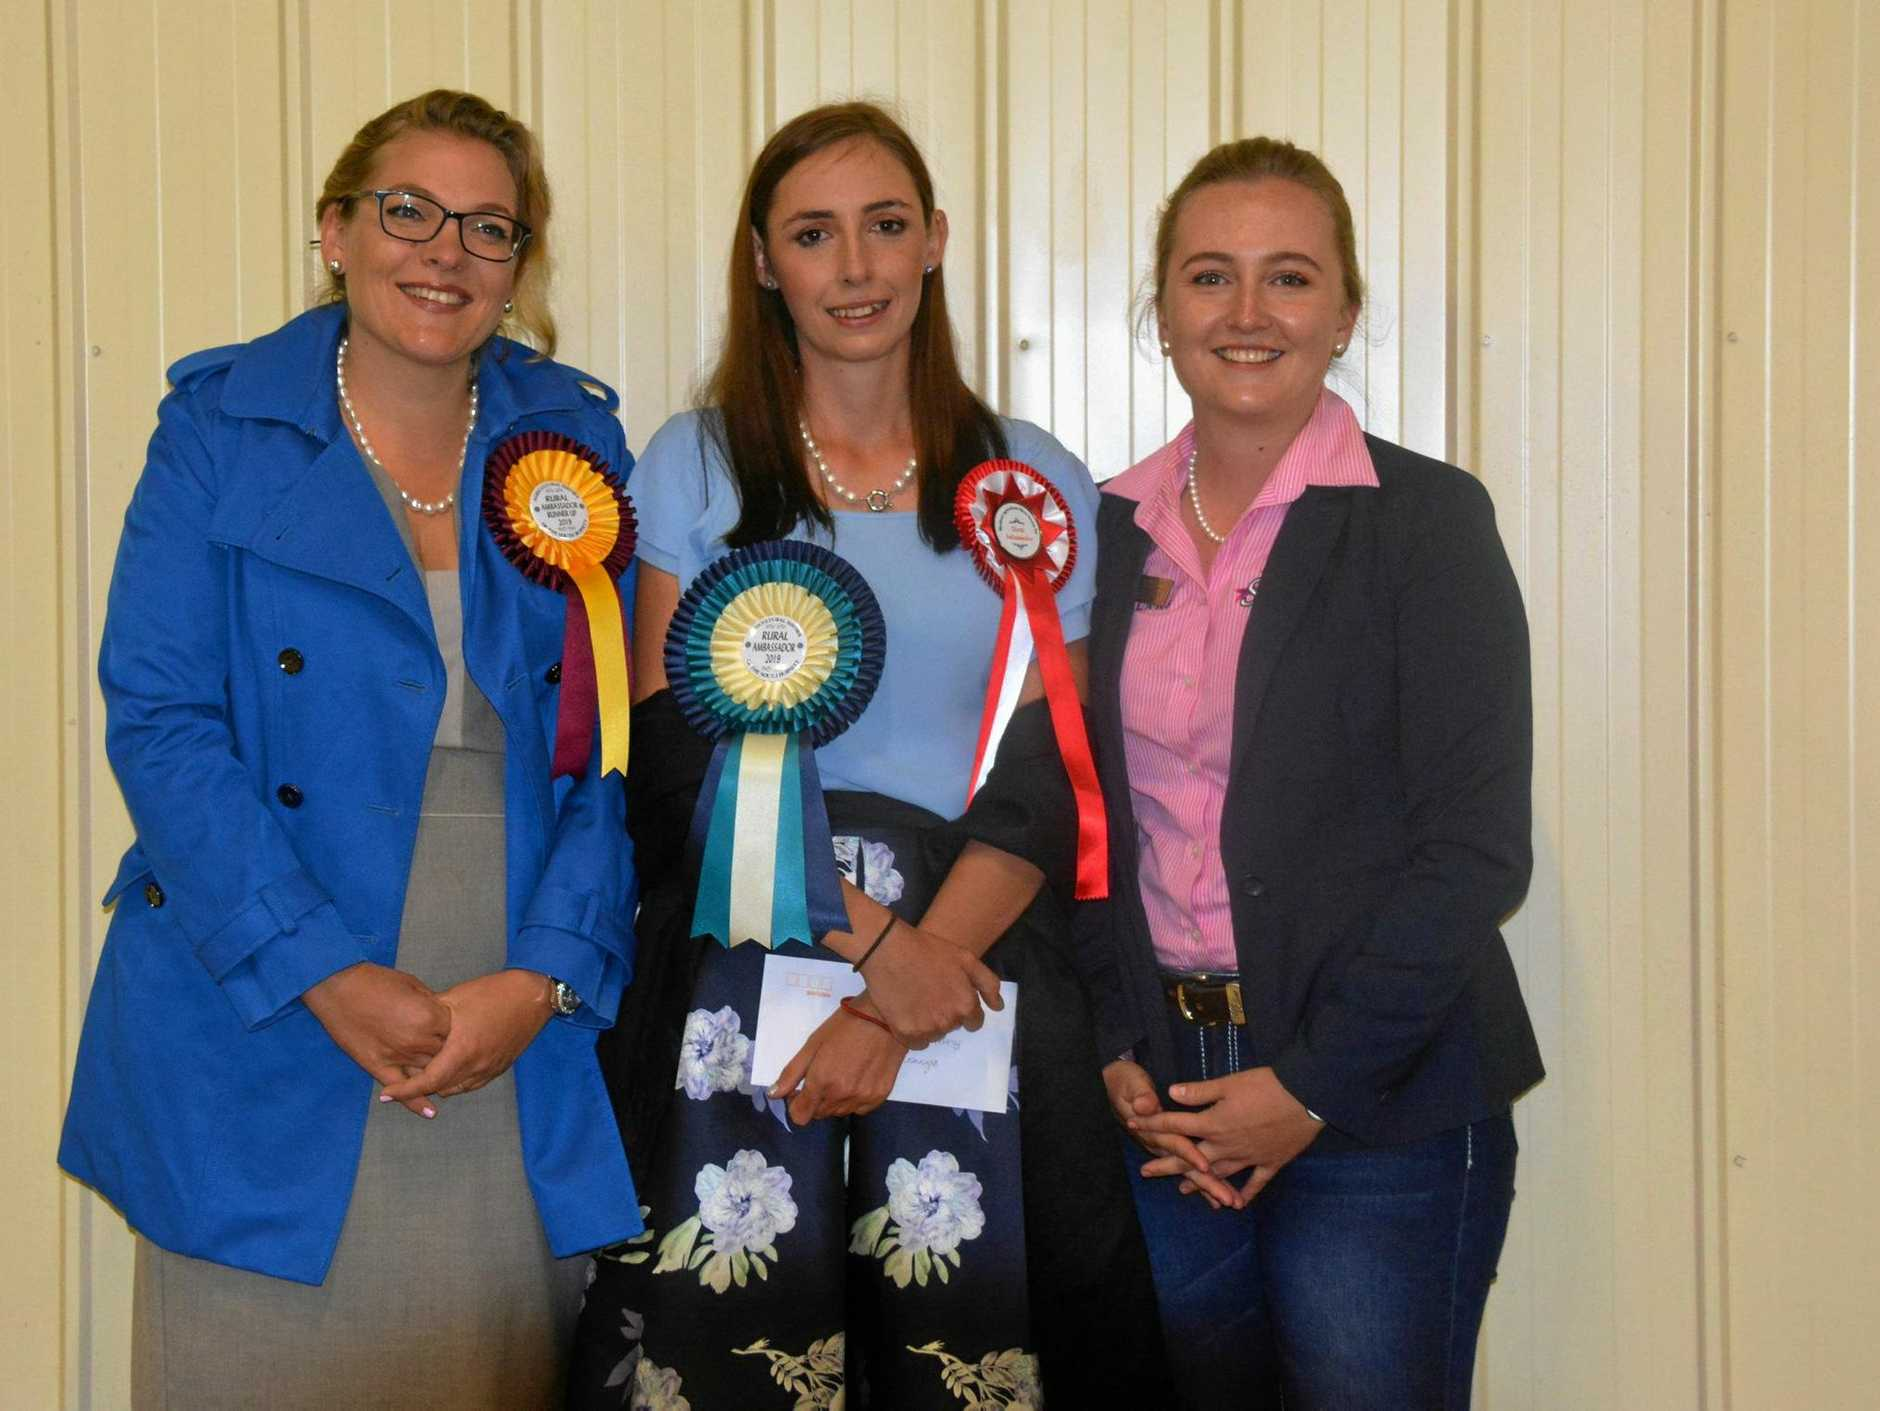 Rural ambassador runner-up Brigitta Knopke (Kingaroy), South Burnett Rural Ambassador Leonie Nichols (Blackbutt) and Stacey Sanders (Nanango).